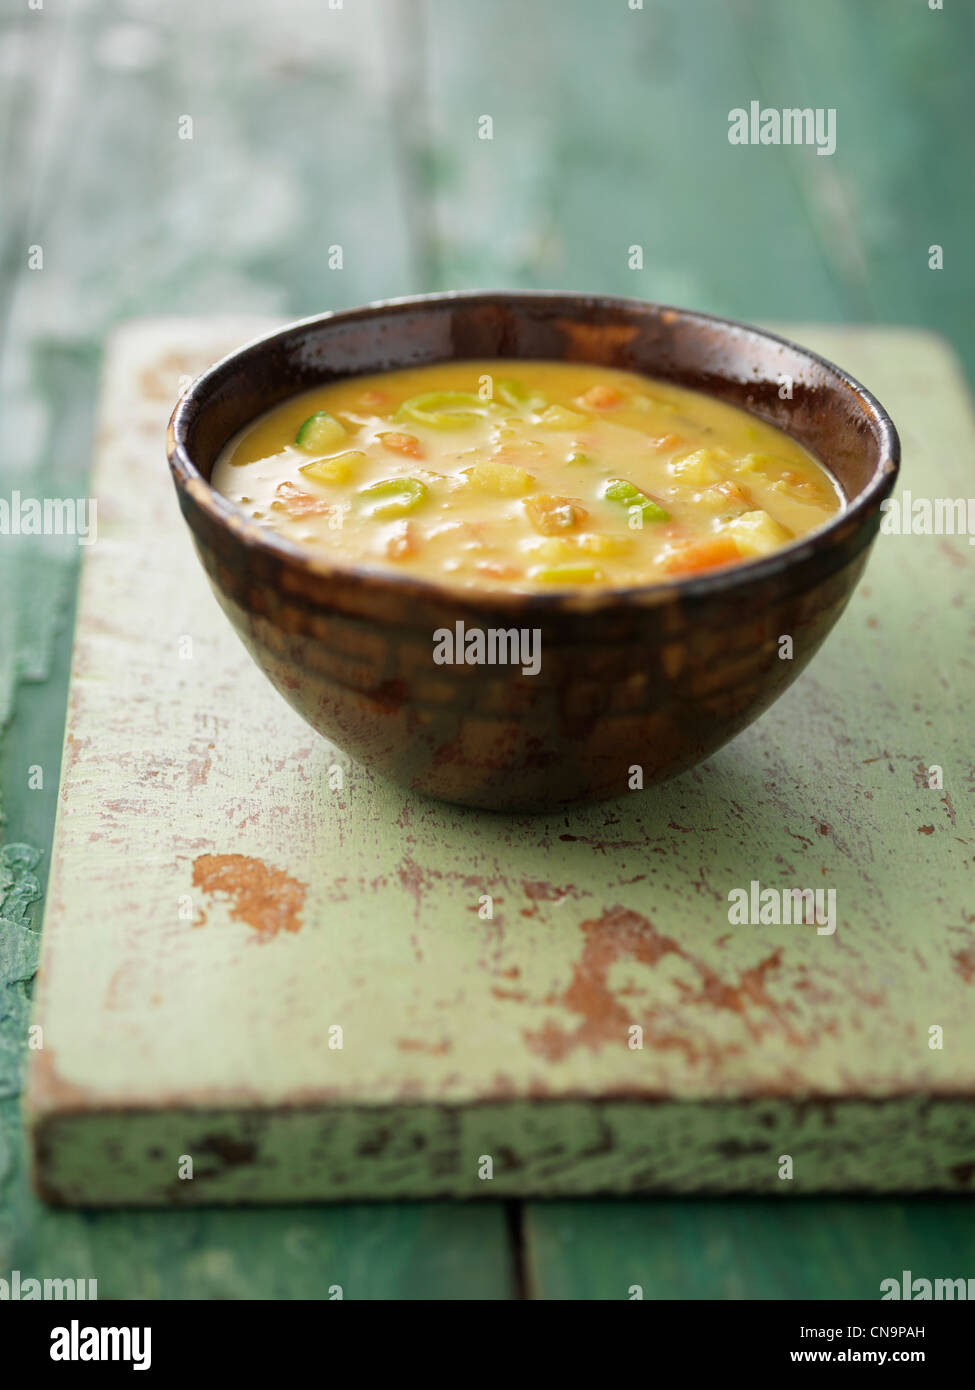 Close up of bowl of vegetable soup - Stock Image